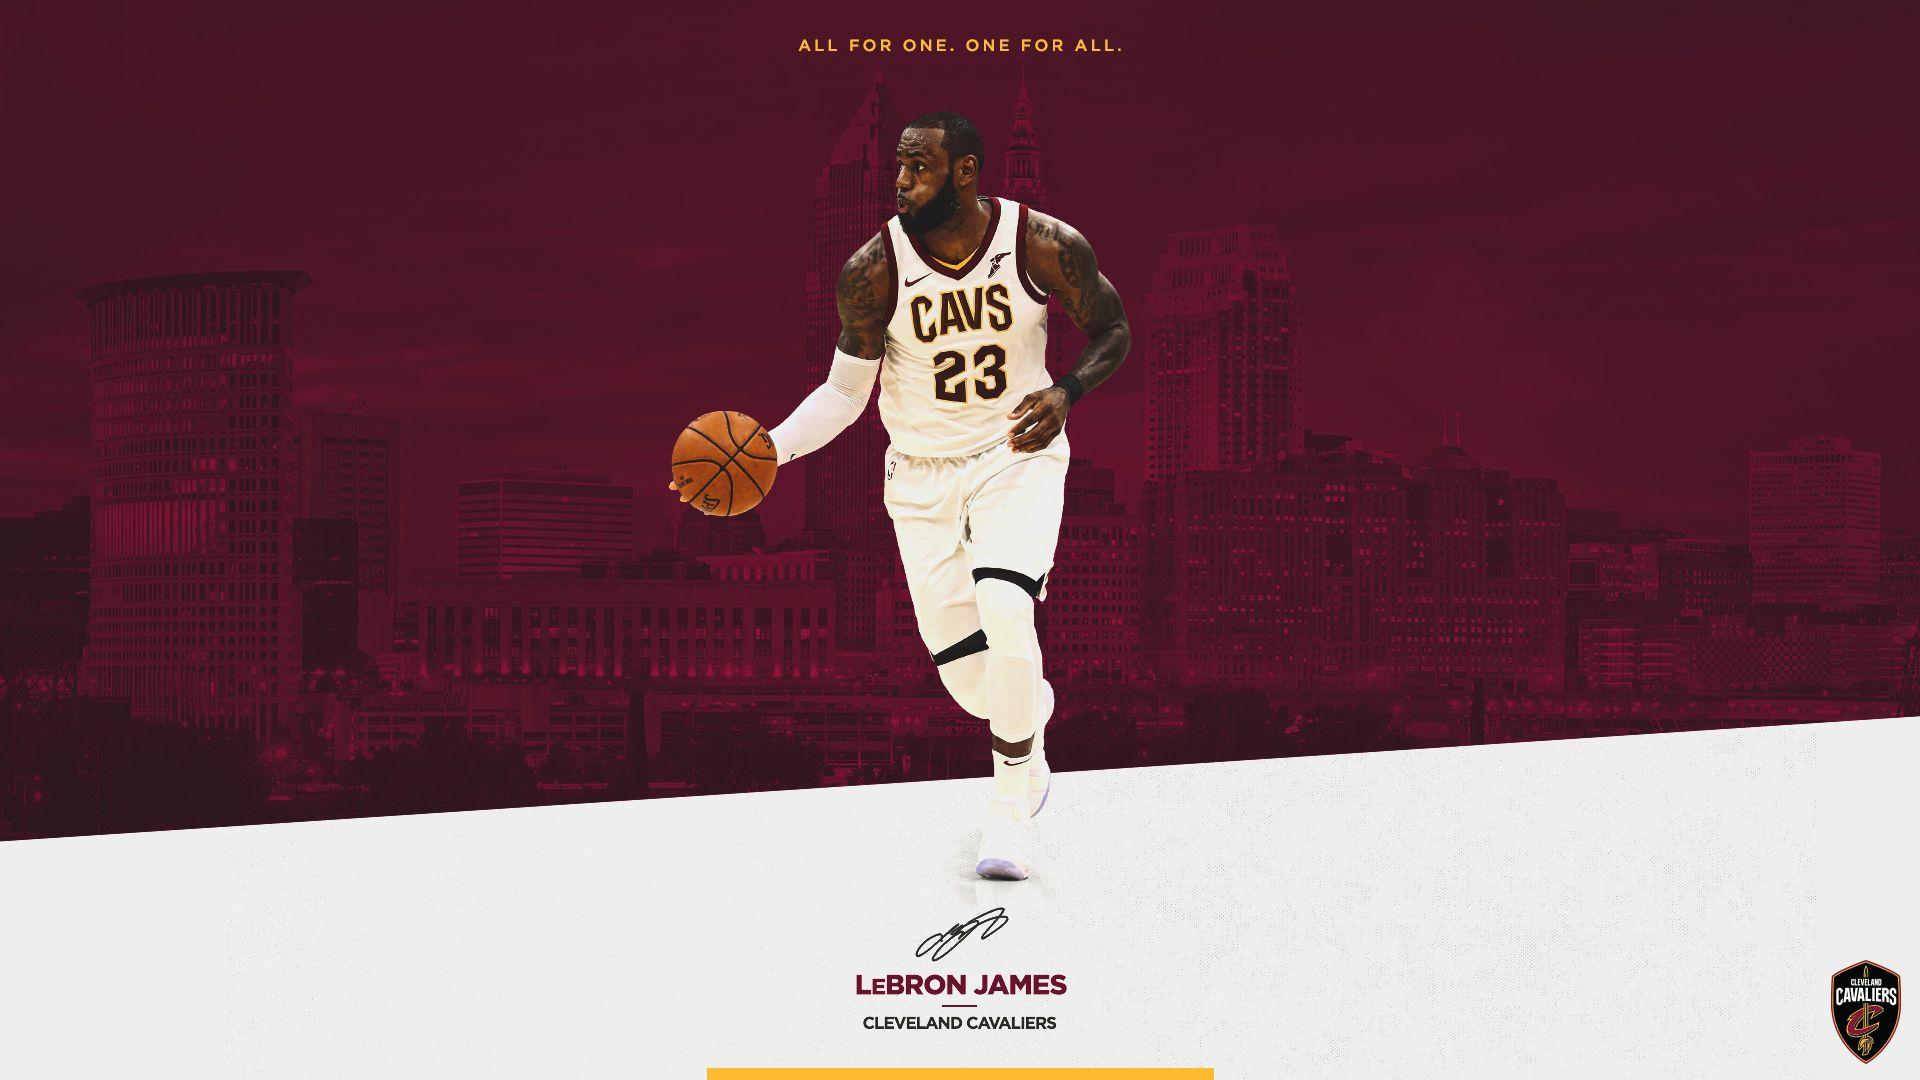 finest selection 5f05e c3a9e Wallpapers   Cleveland Cavaliers